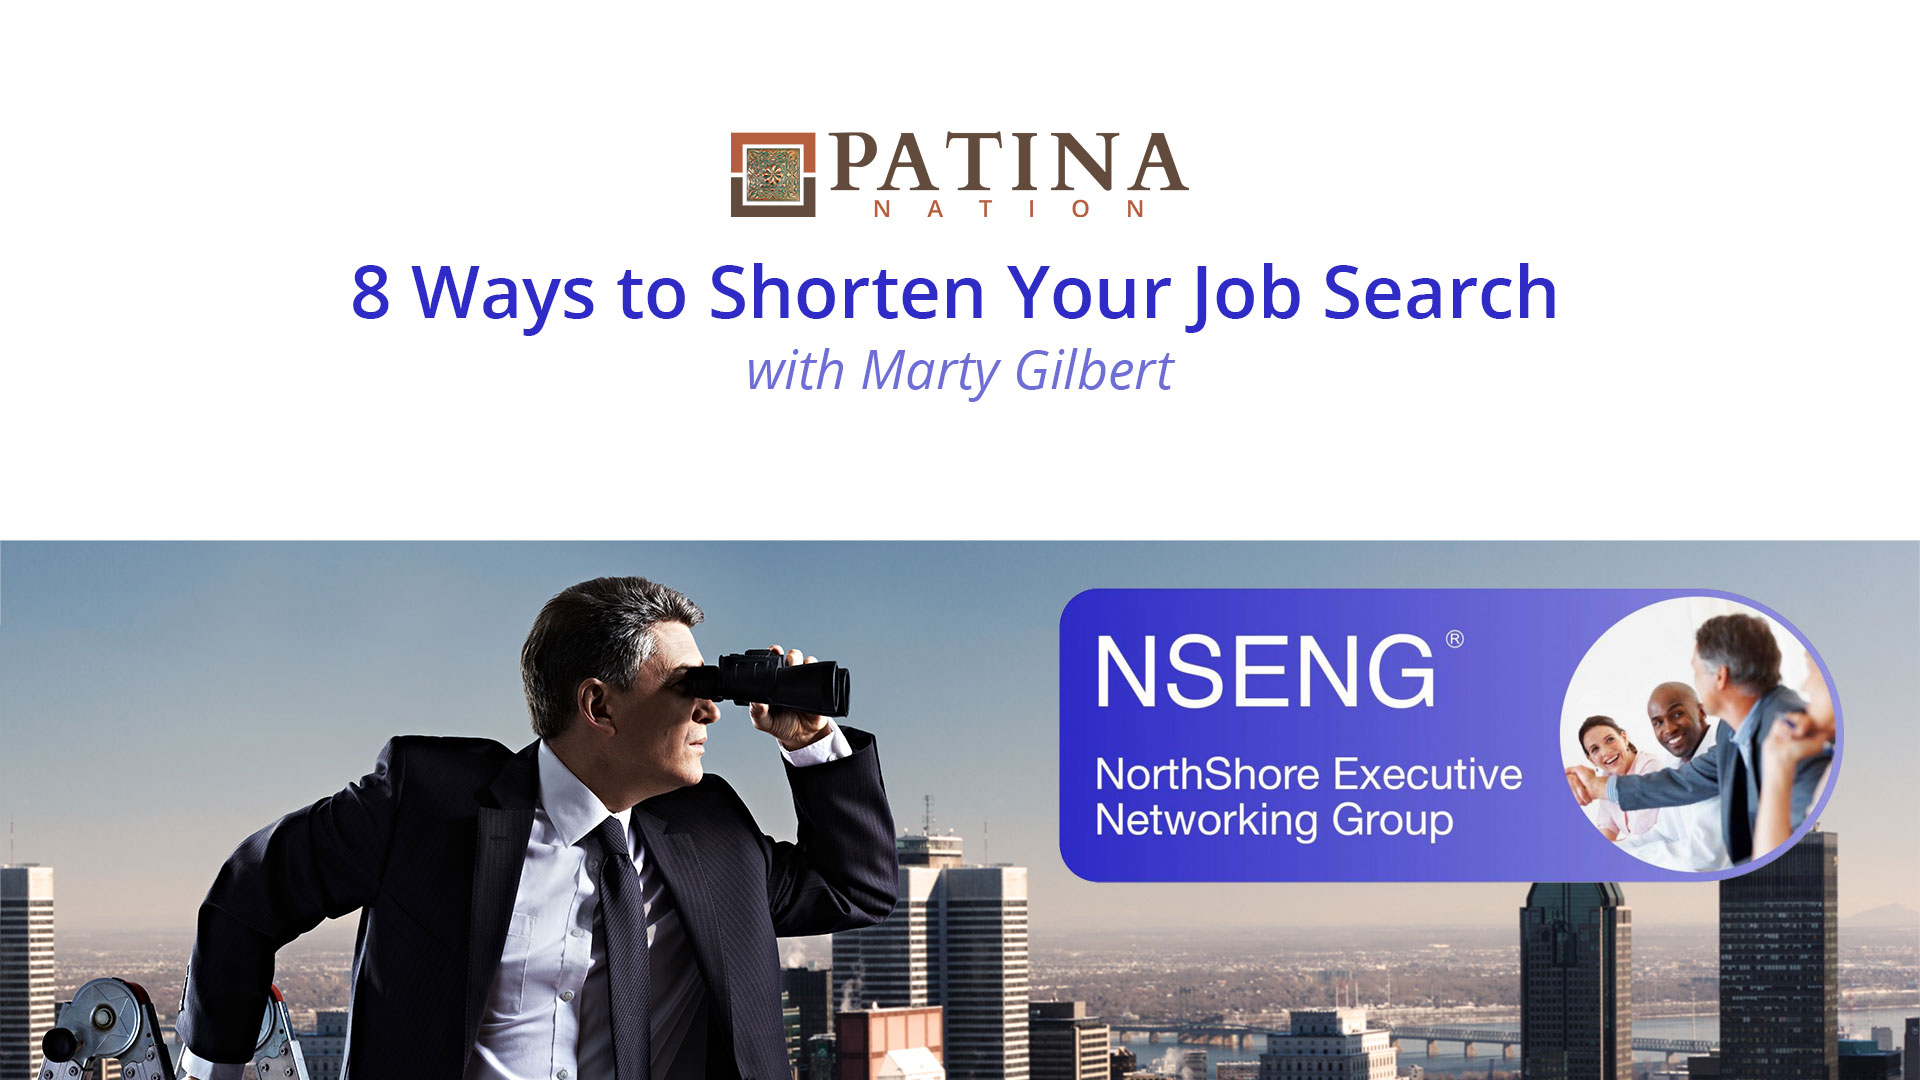 8 Ways To Shorten Your Job Search Patina Nation